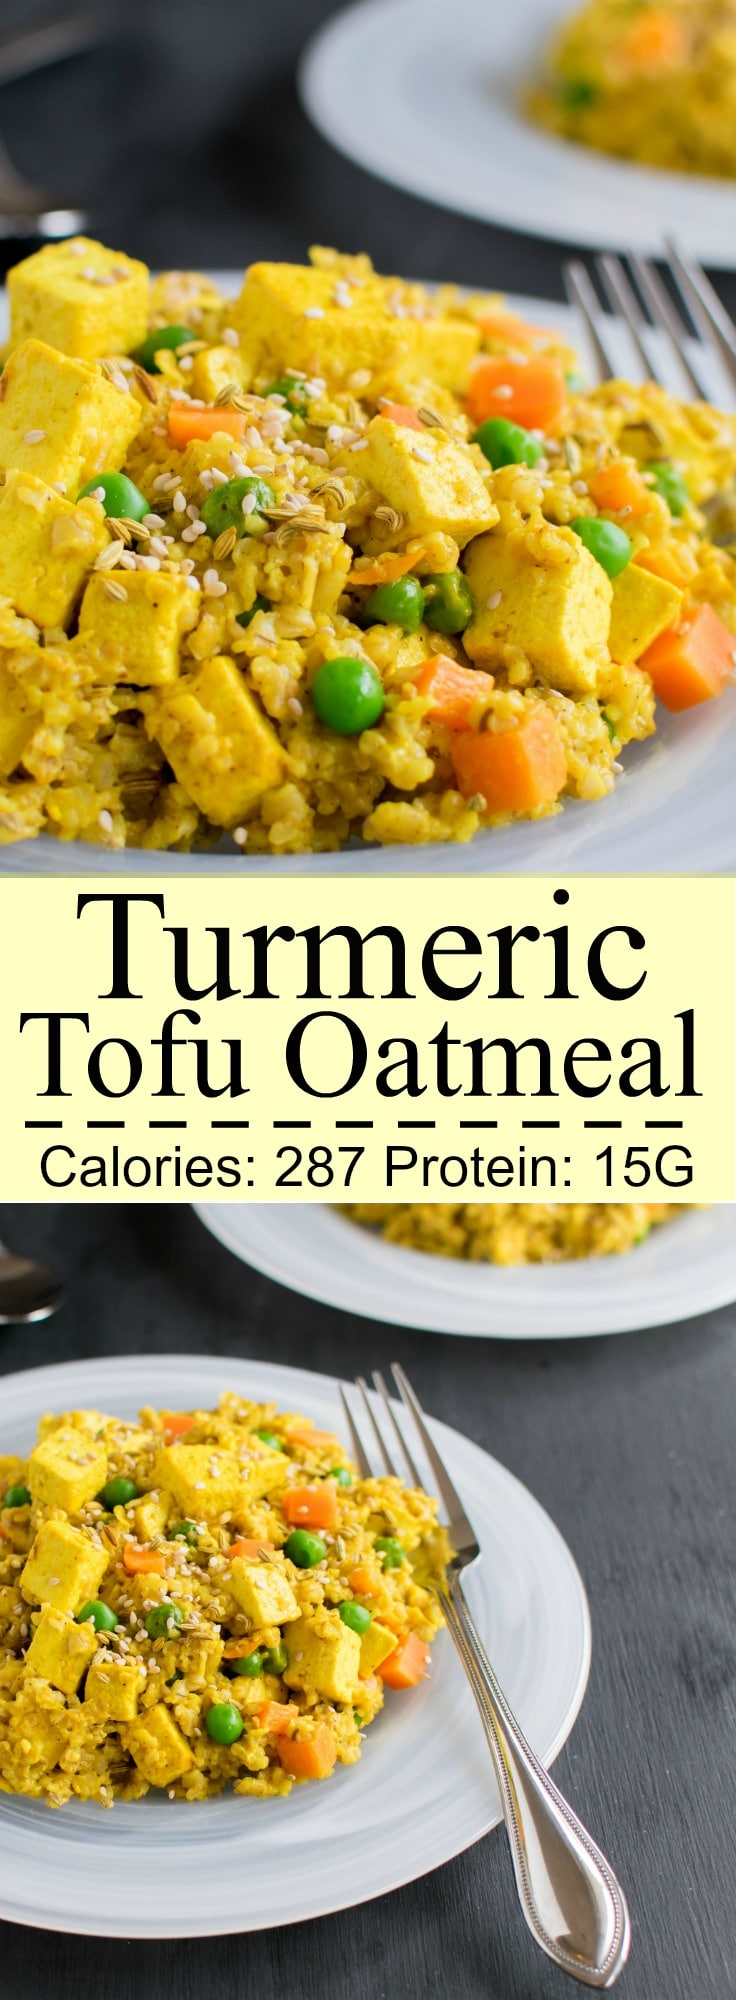 Turmeric Tofu Oatmeal - healthy and nutritious savory lunch option | vegan and dairy free | kiipfit.com